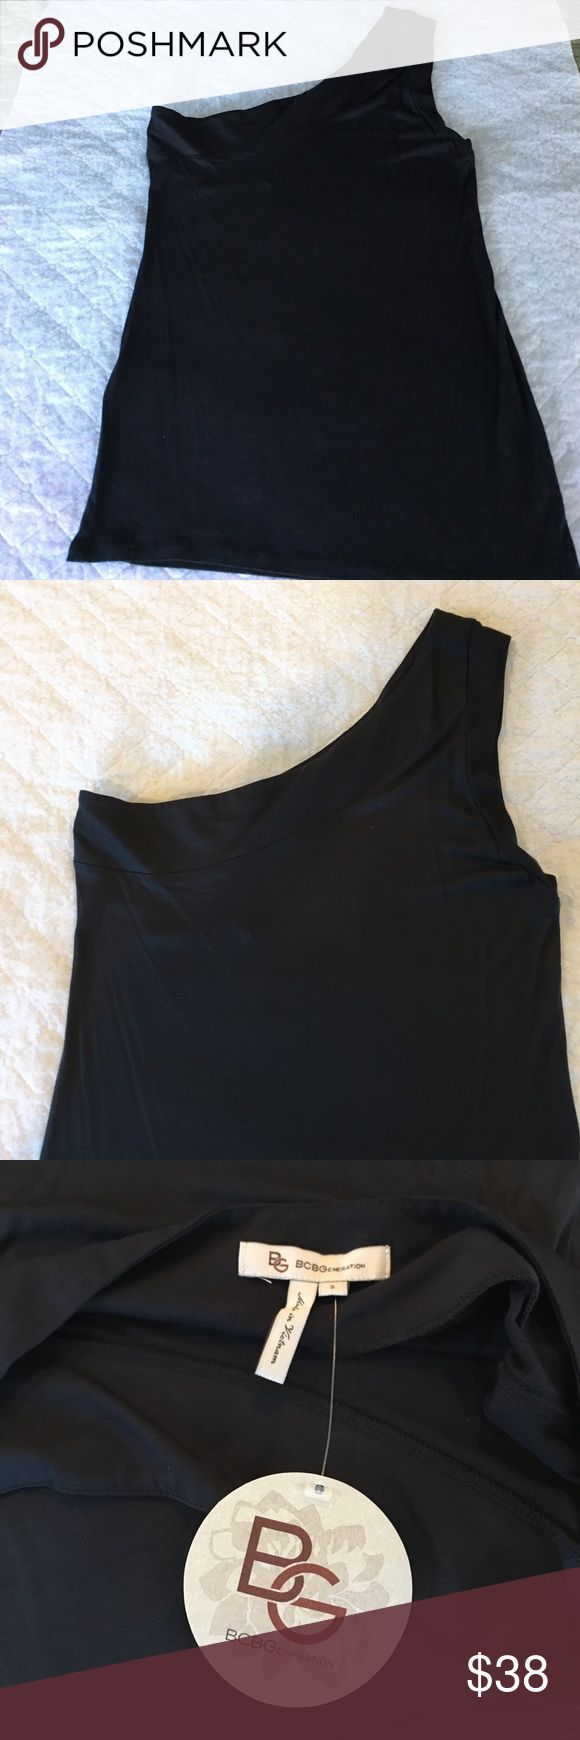 BCBGeneration One shoulder tank top BCBGeneration top. One shoulder tank top size small. 100% Rayon. Never worn, new with tags. BCBGeneration Tops Tank Tops